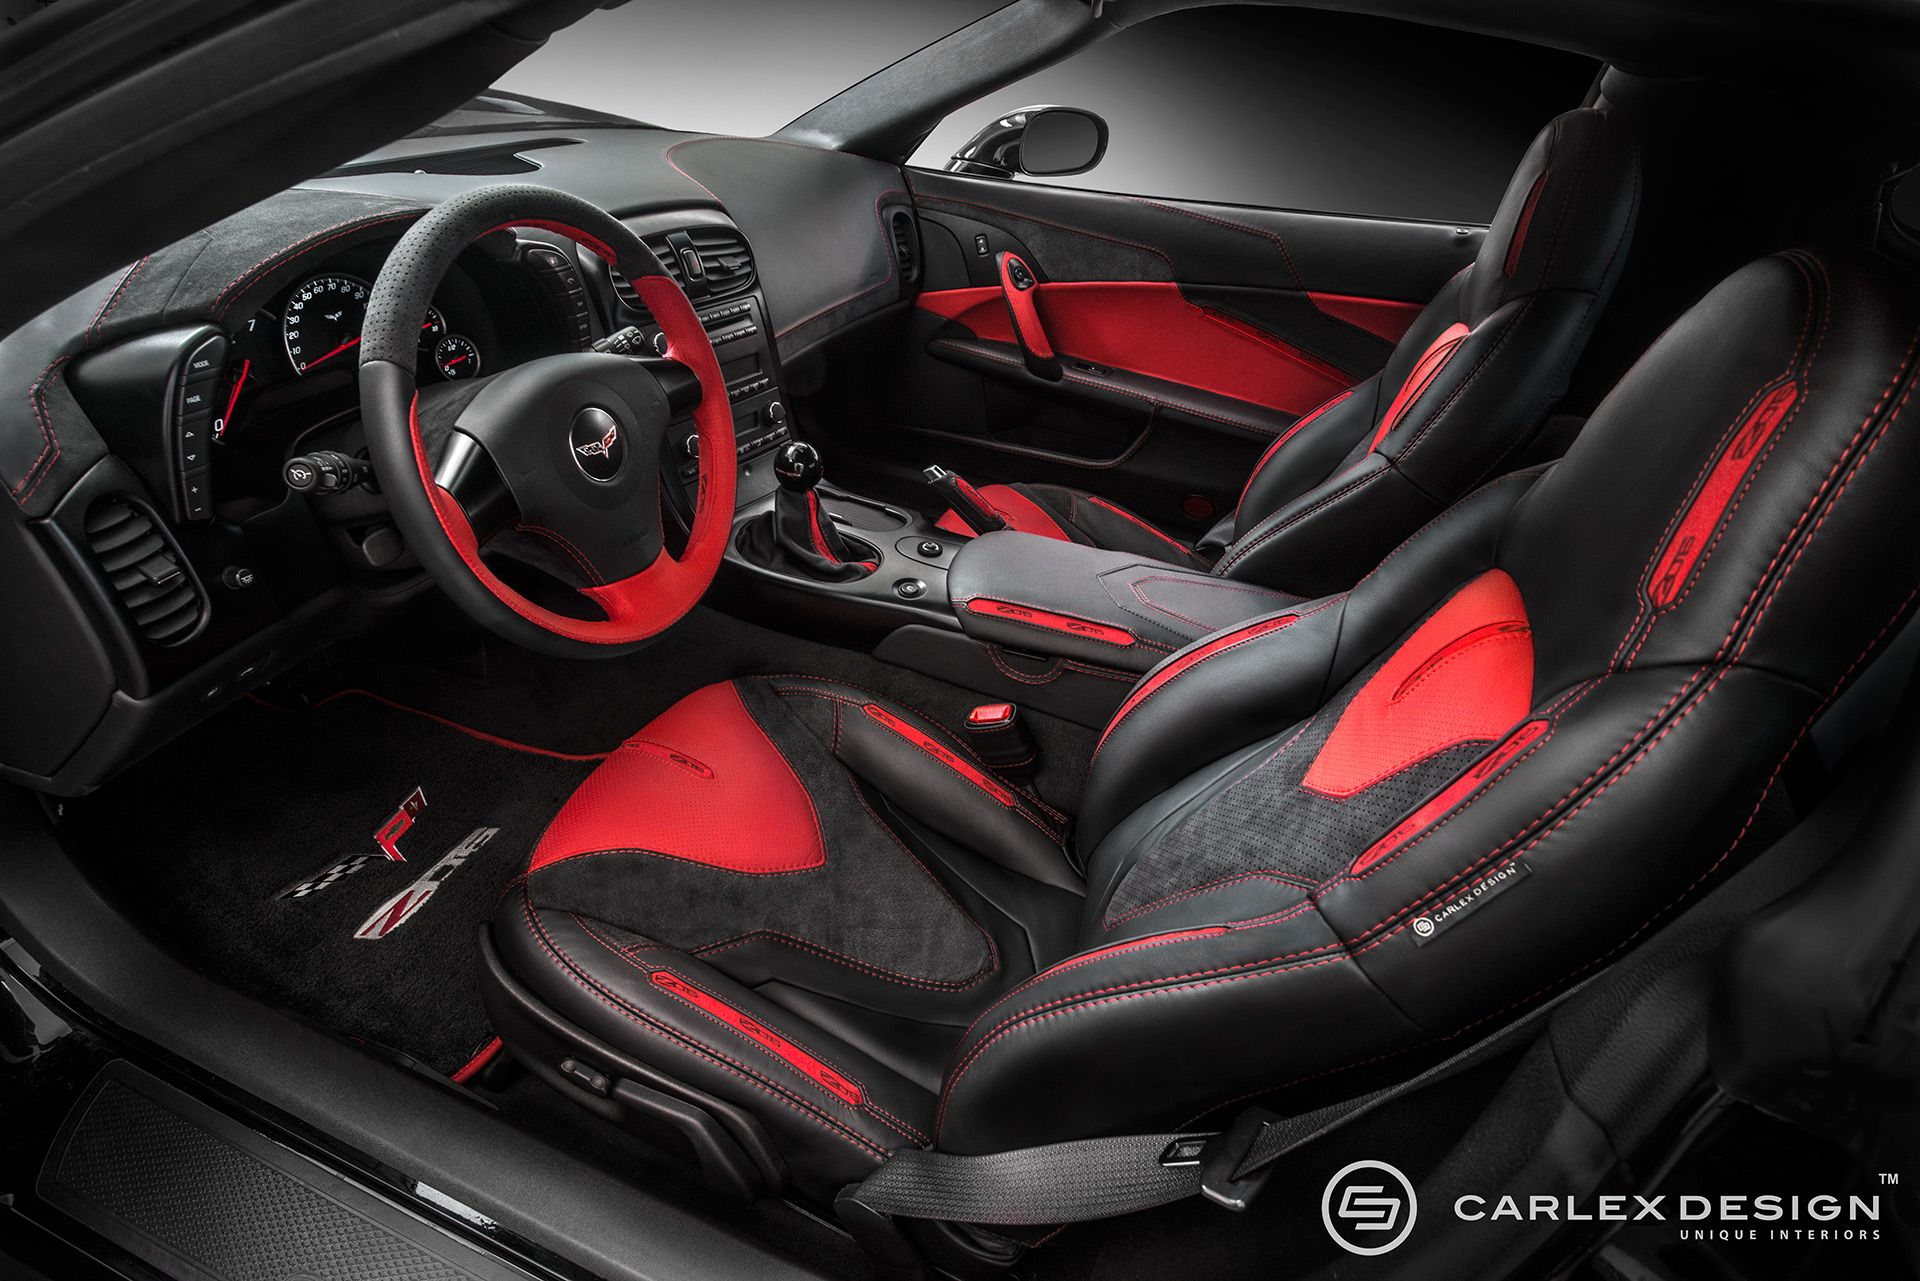 Corvette C6 Z06 Interior All Corvettes Corvette C6 Z06 2015